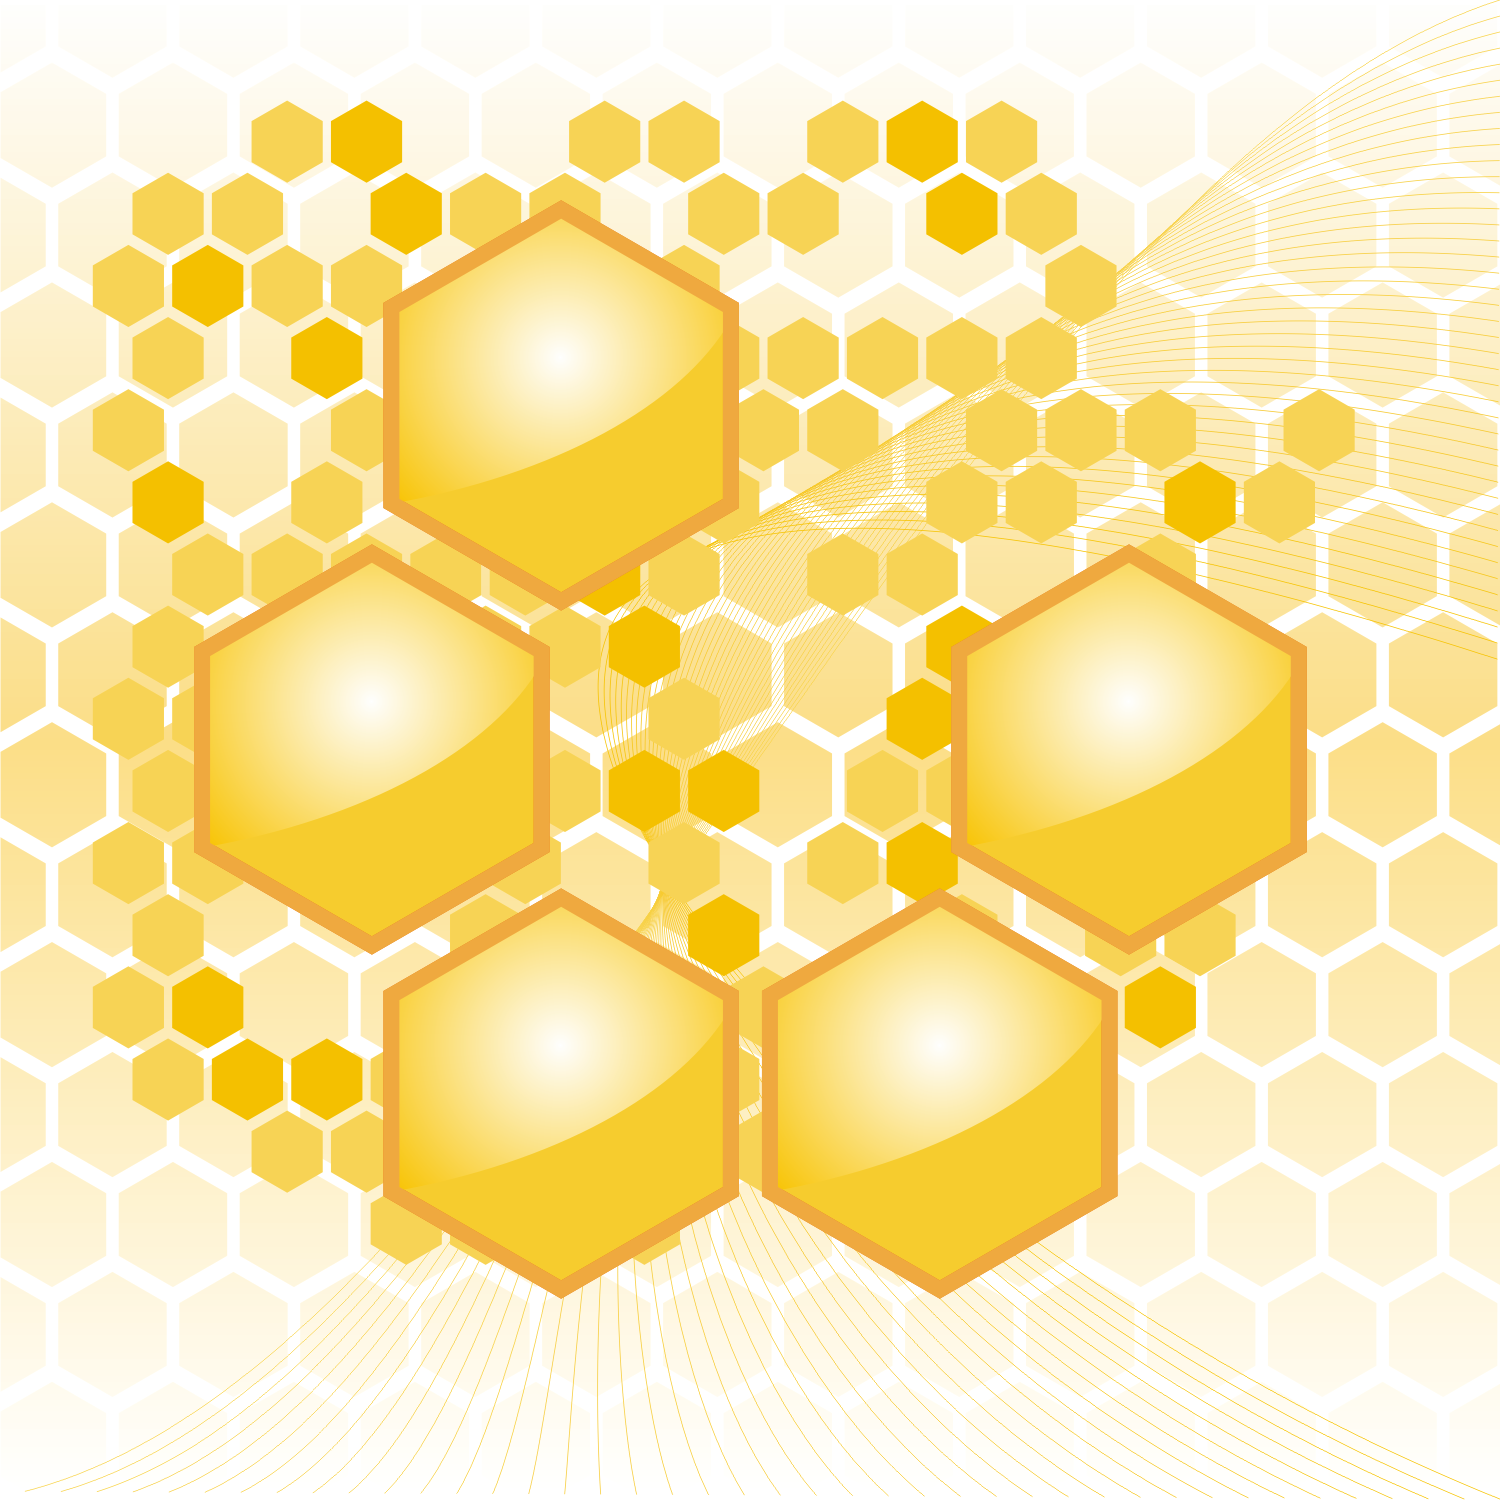 Fine background with abstract yellow honeycombs. Free vector illustration